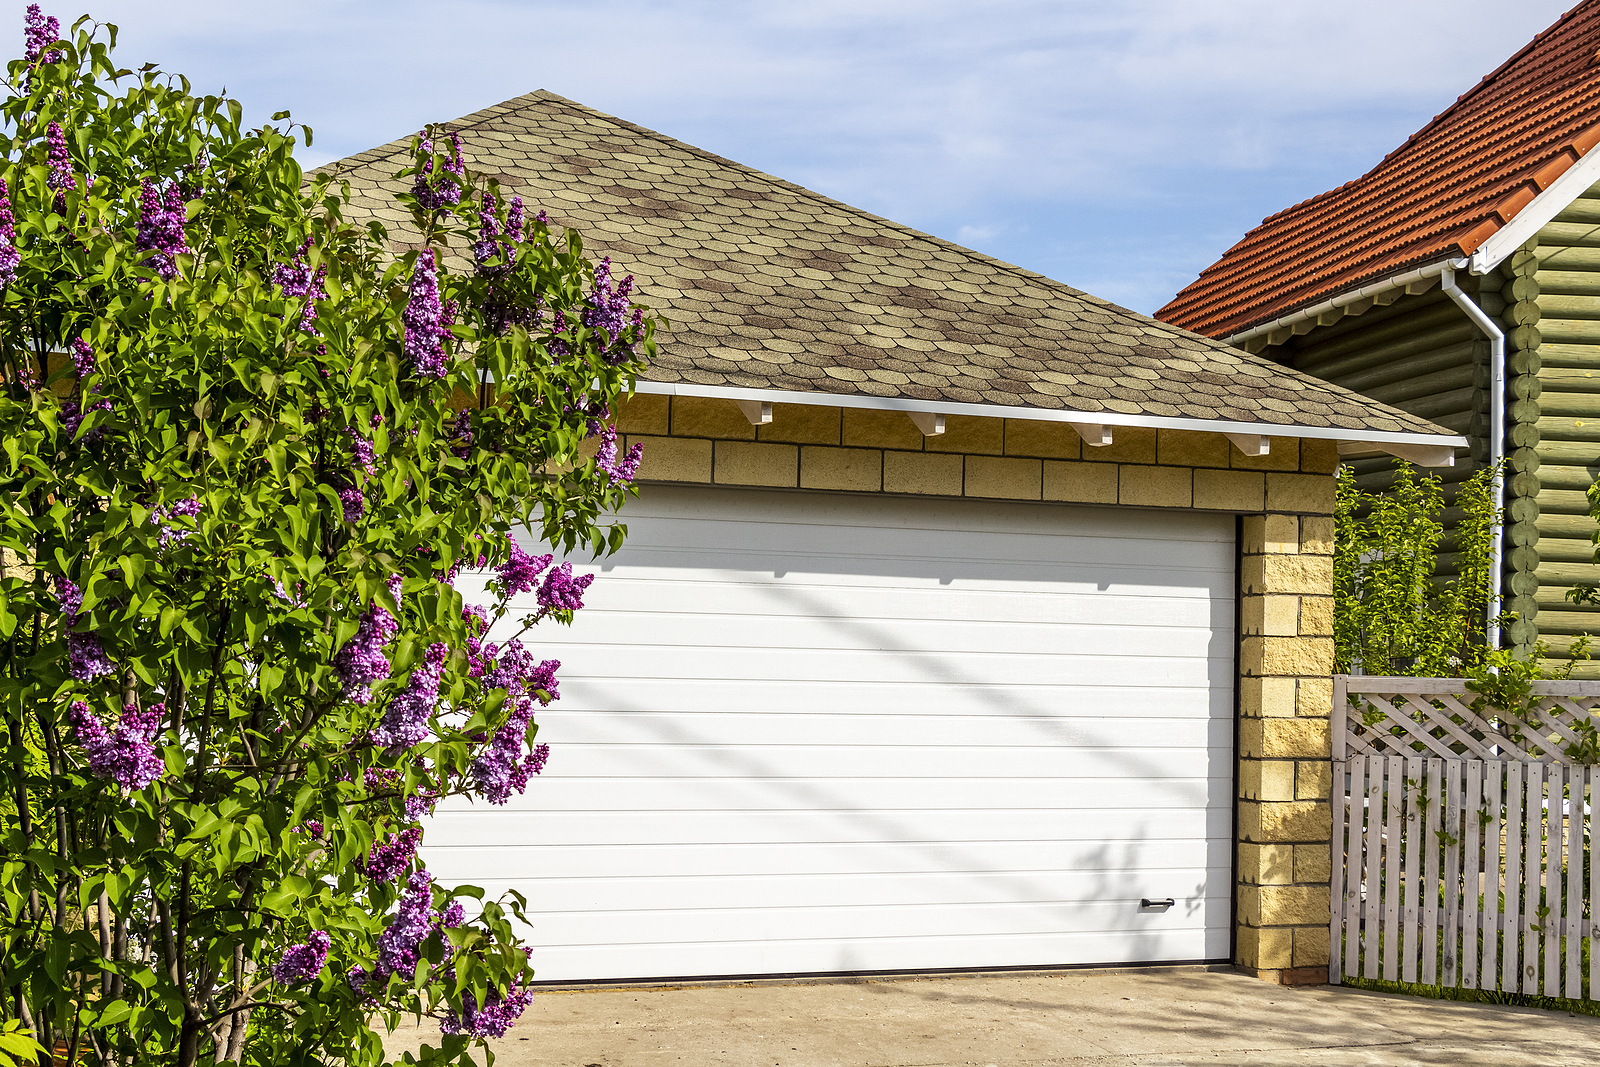 White-Garage-Doors-of-a-Private-House-and-Nearby-Lilac-Bushes